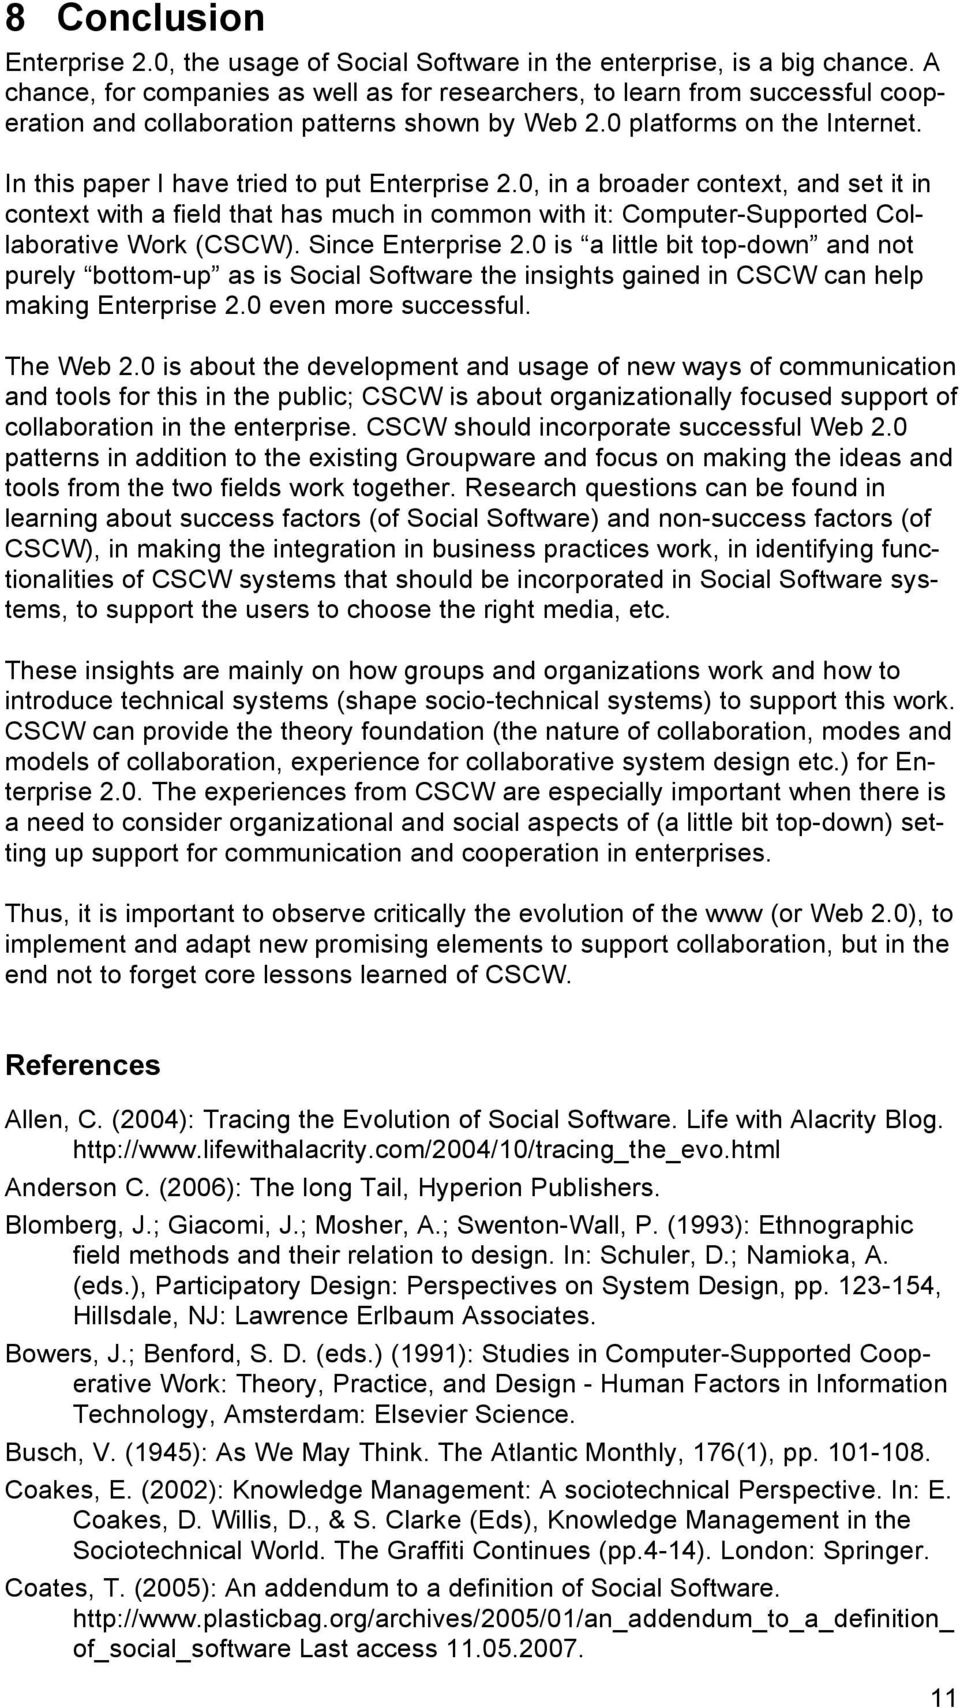 In this paper I have tried to put Enterprise 2.0, in a broader context, and set it in context with a field that has much in common with it: Computer-Supported Collaborative Work (CSCW).